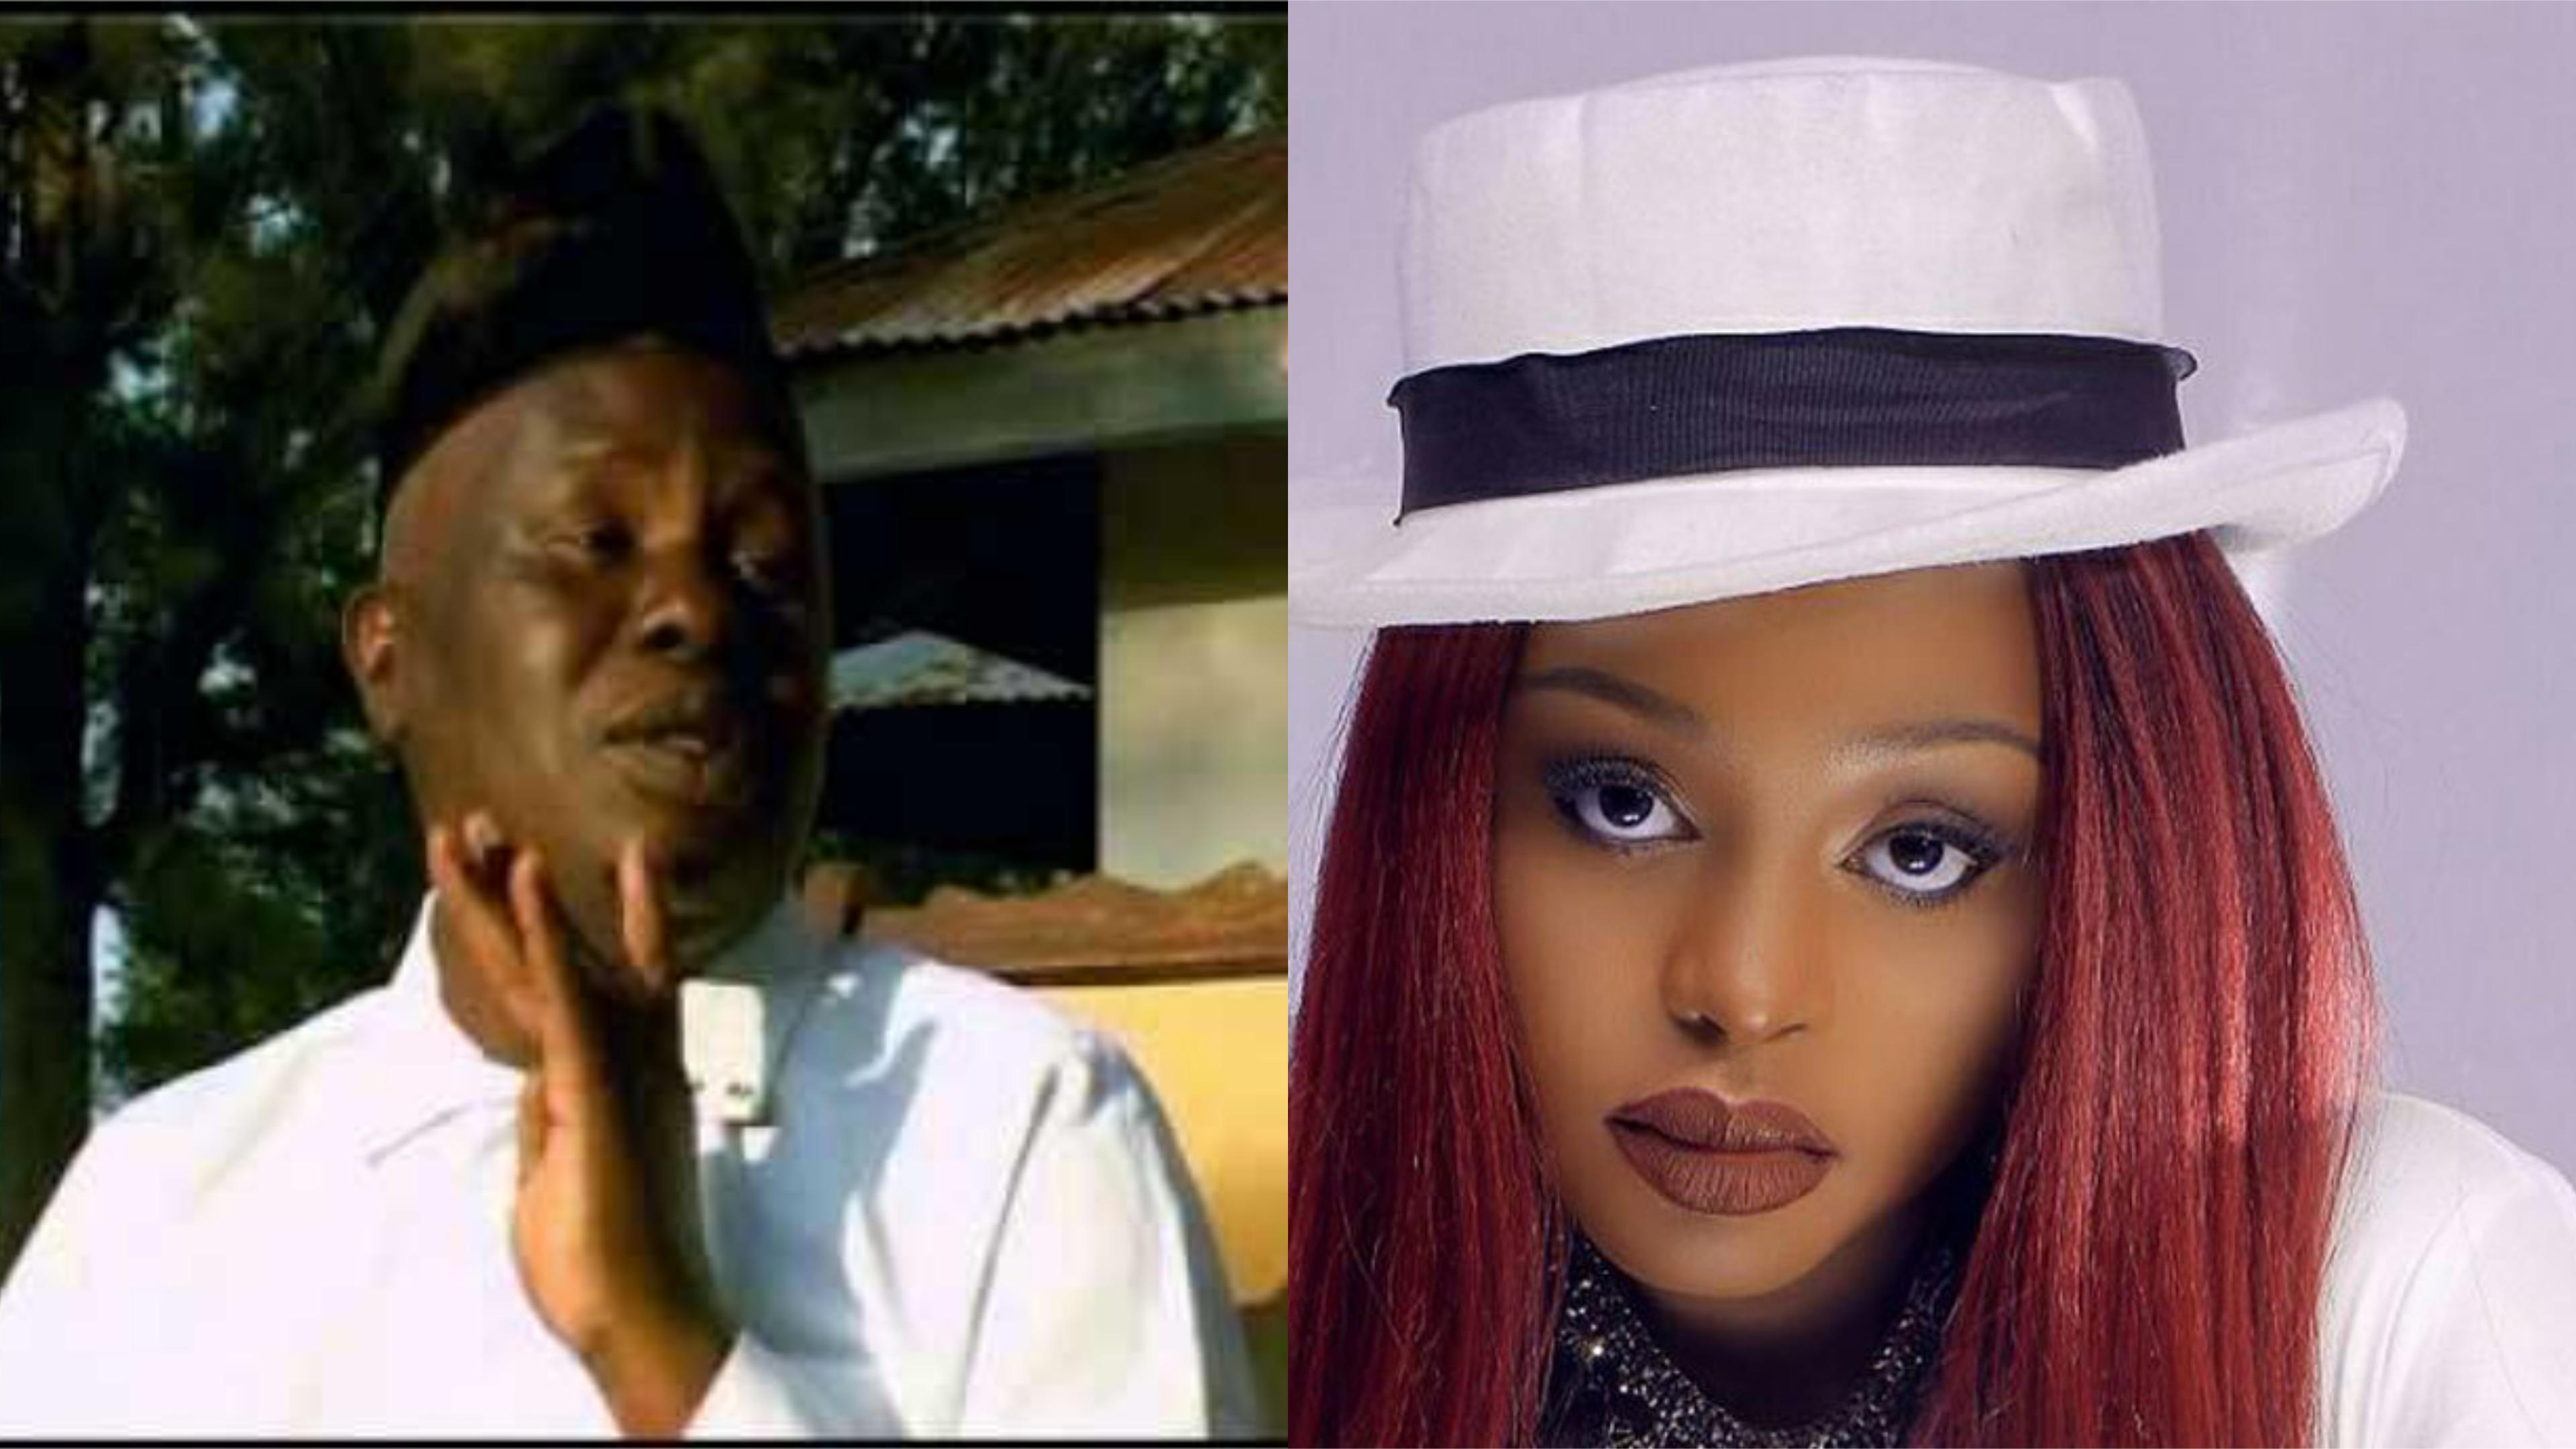 Ugandan Actor Ashraf Ssemwogerere has written to singer Rema Namakula educating her on how to handle family. (FILE PHOTO)